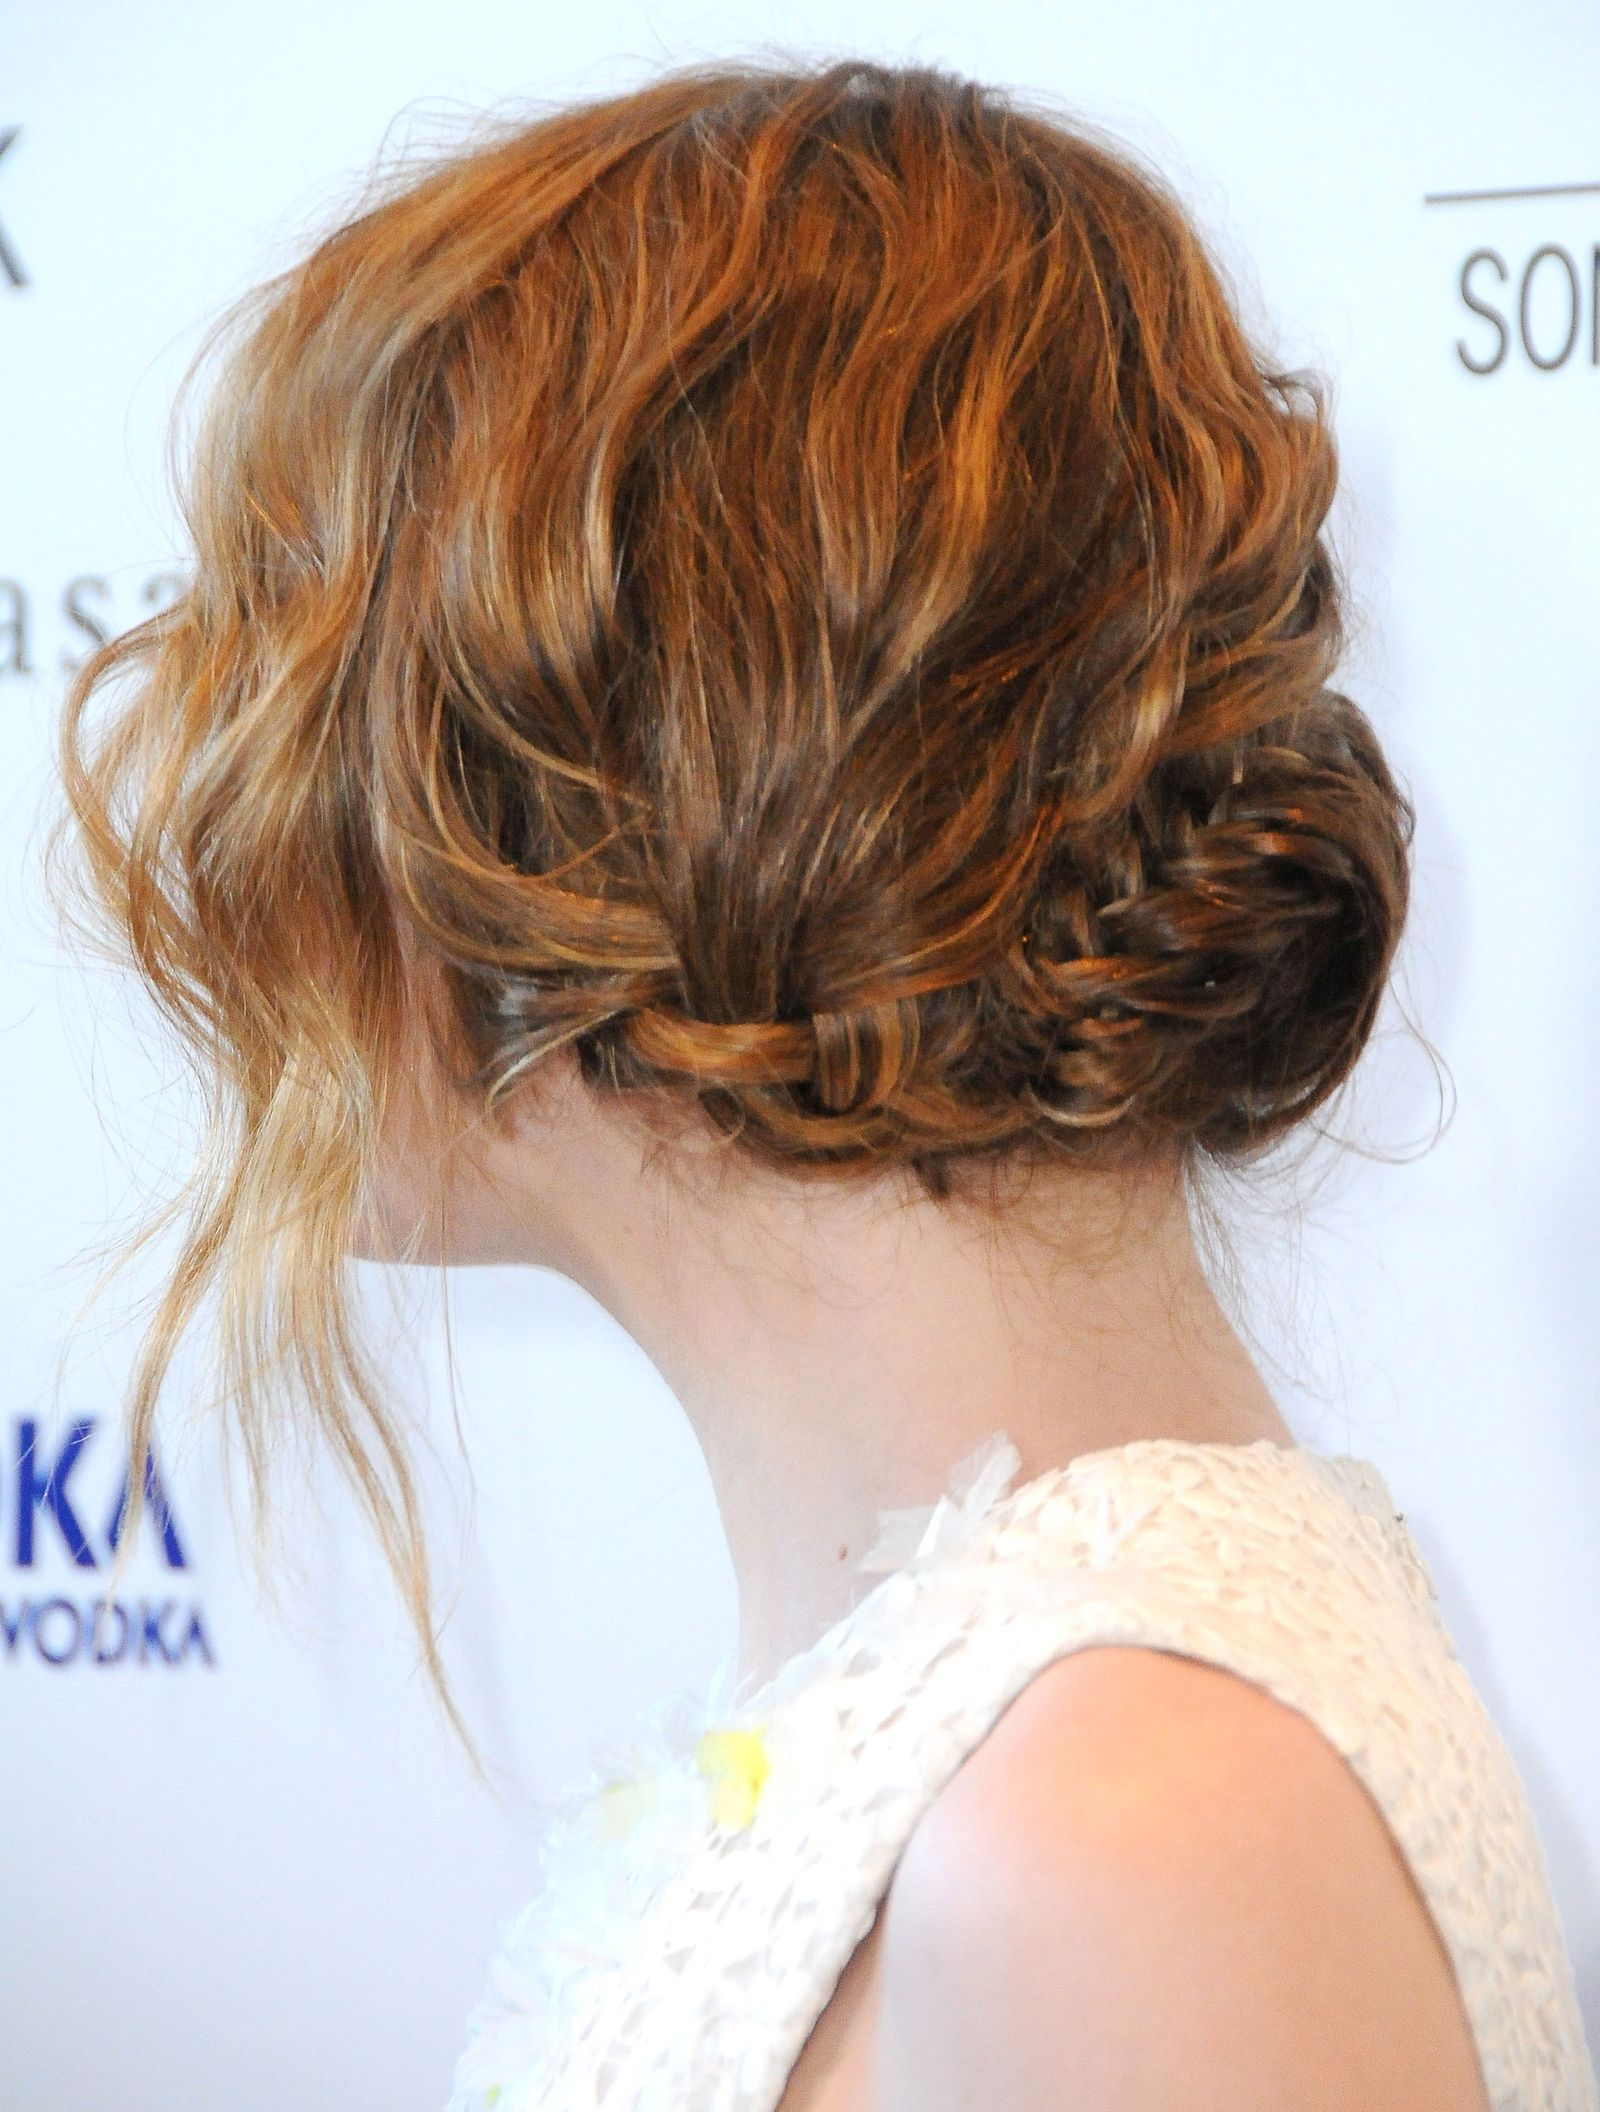 13 Easy Updos for Short Hair | Peinados